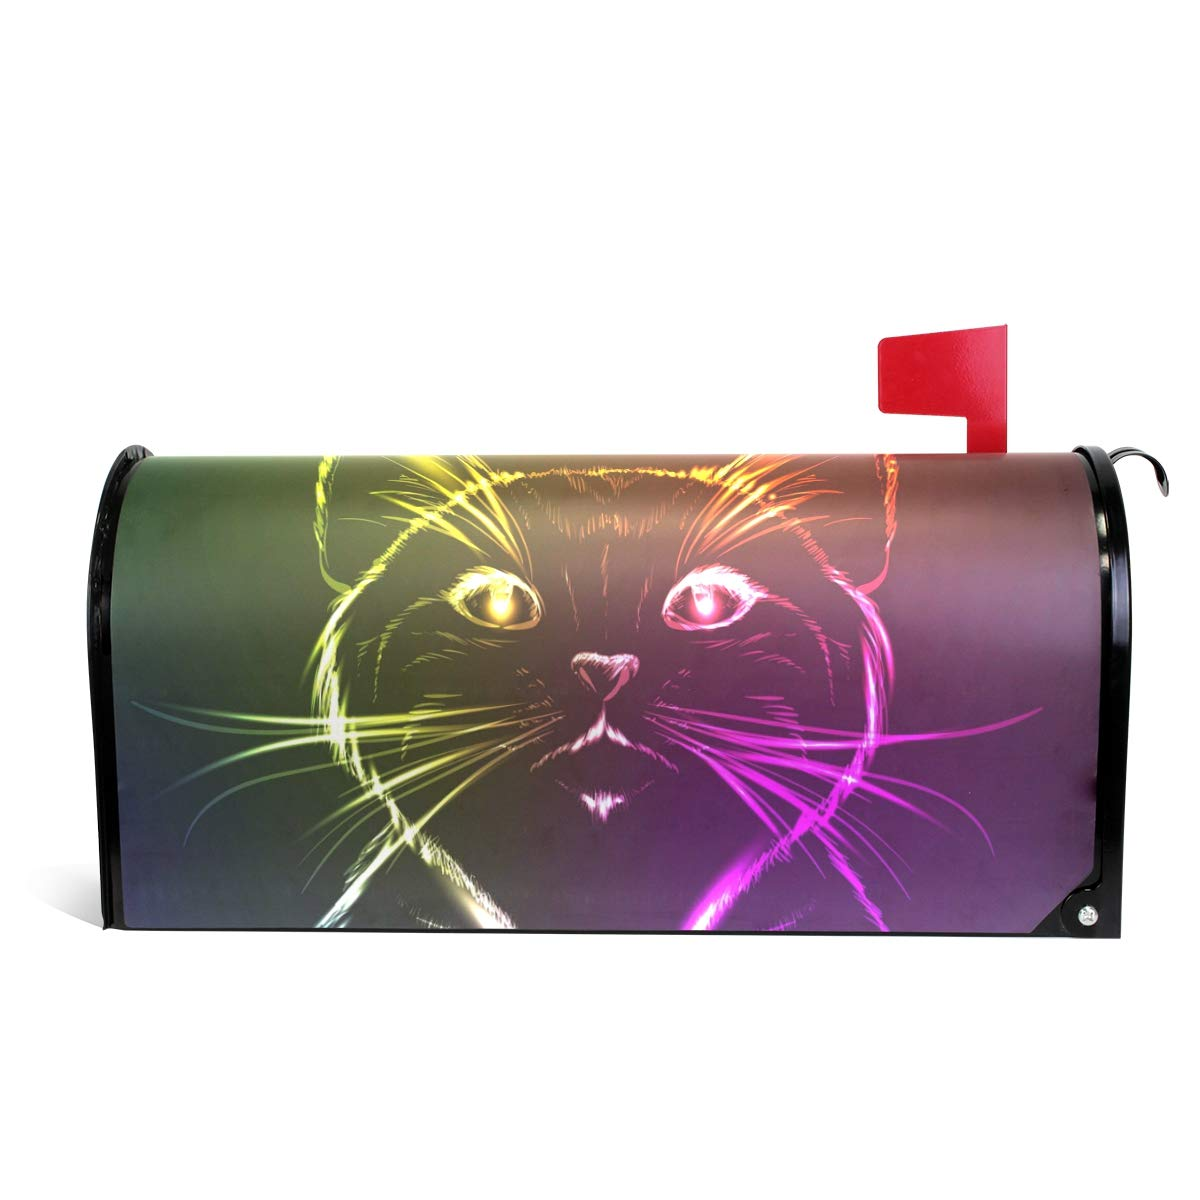 senya Magnetic Large Size Mailbox Cover Seamless Cats Sketch Cute in Neon Light, Oversized by senya